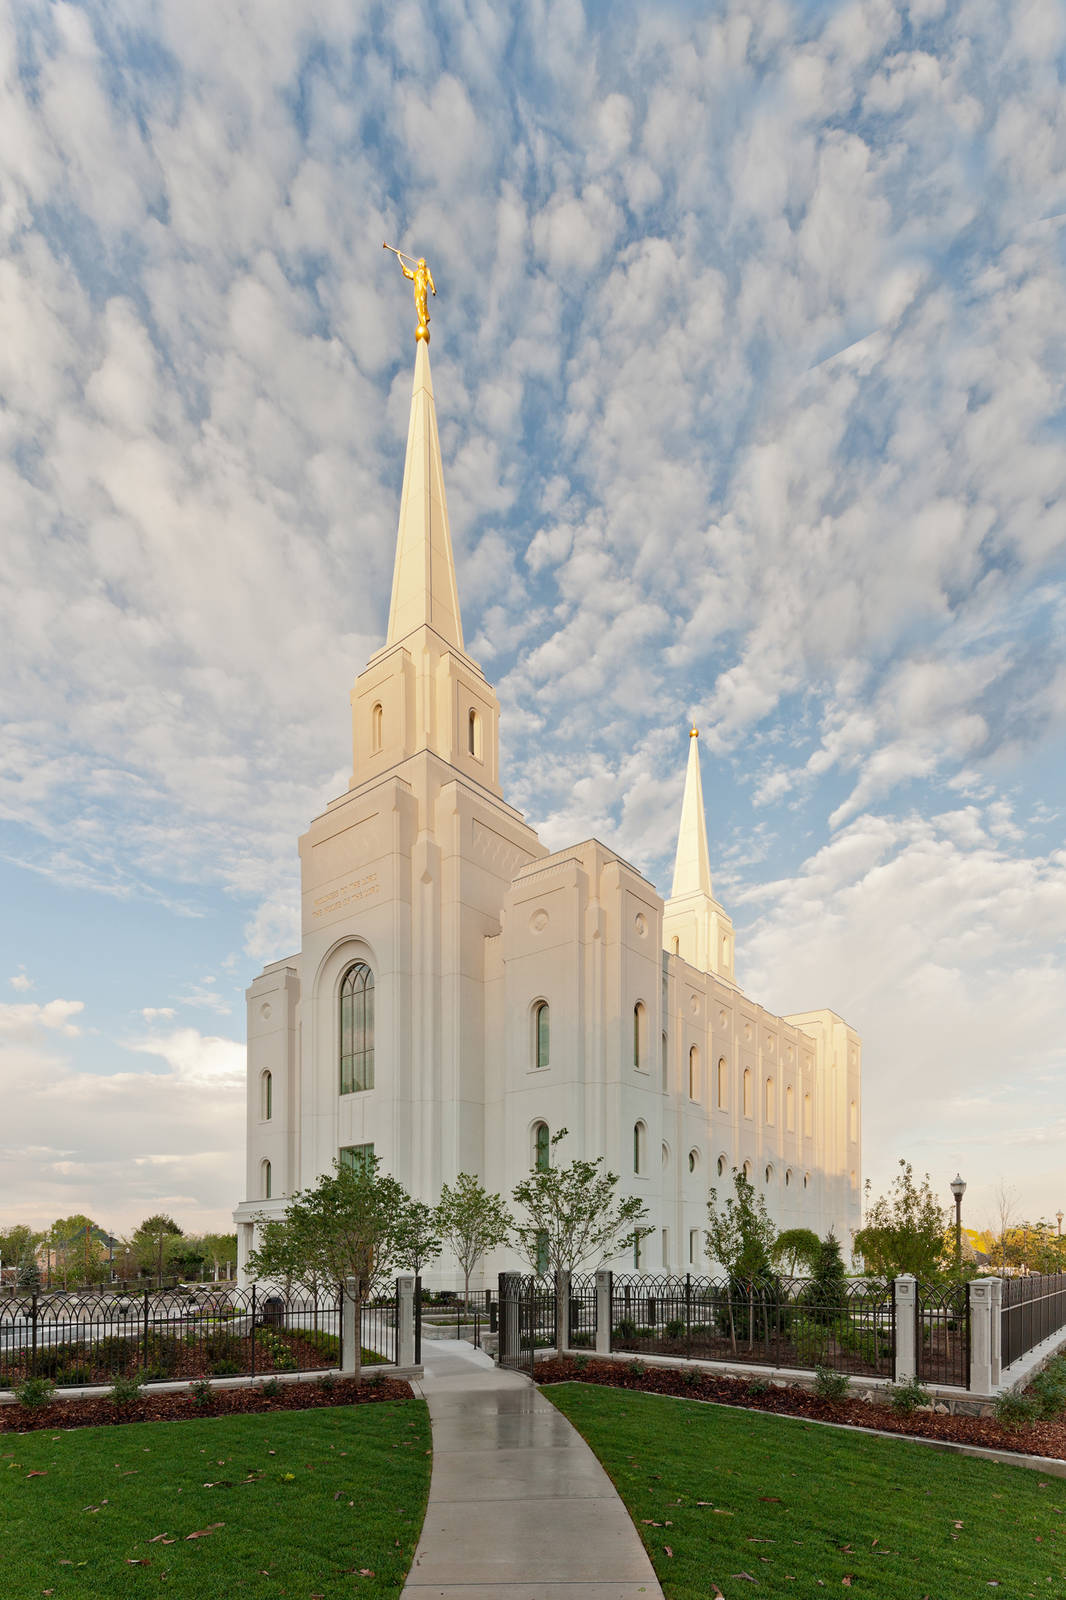 brigham city catholic singles Get st henry's catholic church phone number in brigham city, ut 84302, churches, st henry's catholic church reviews.